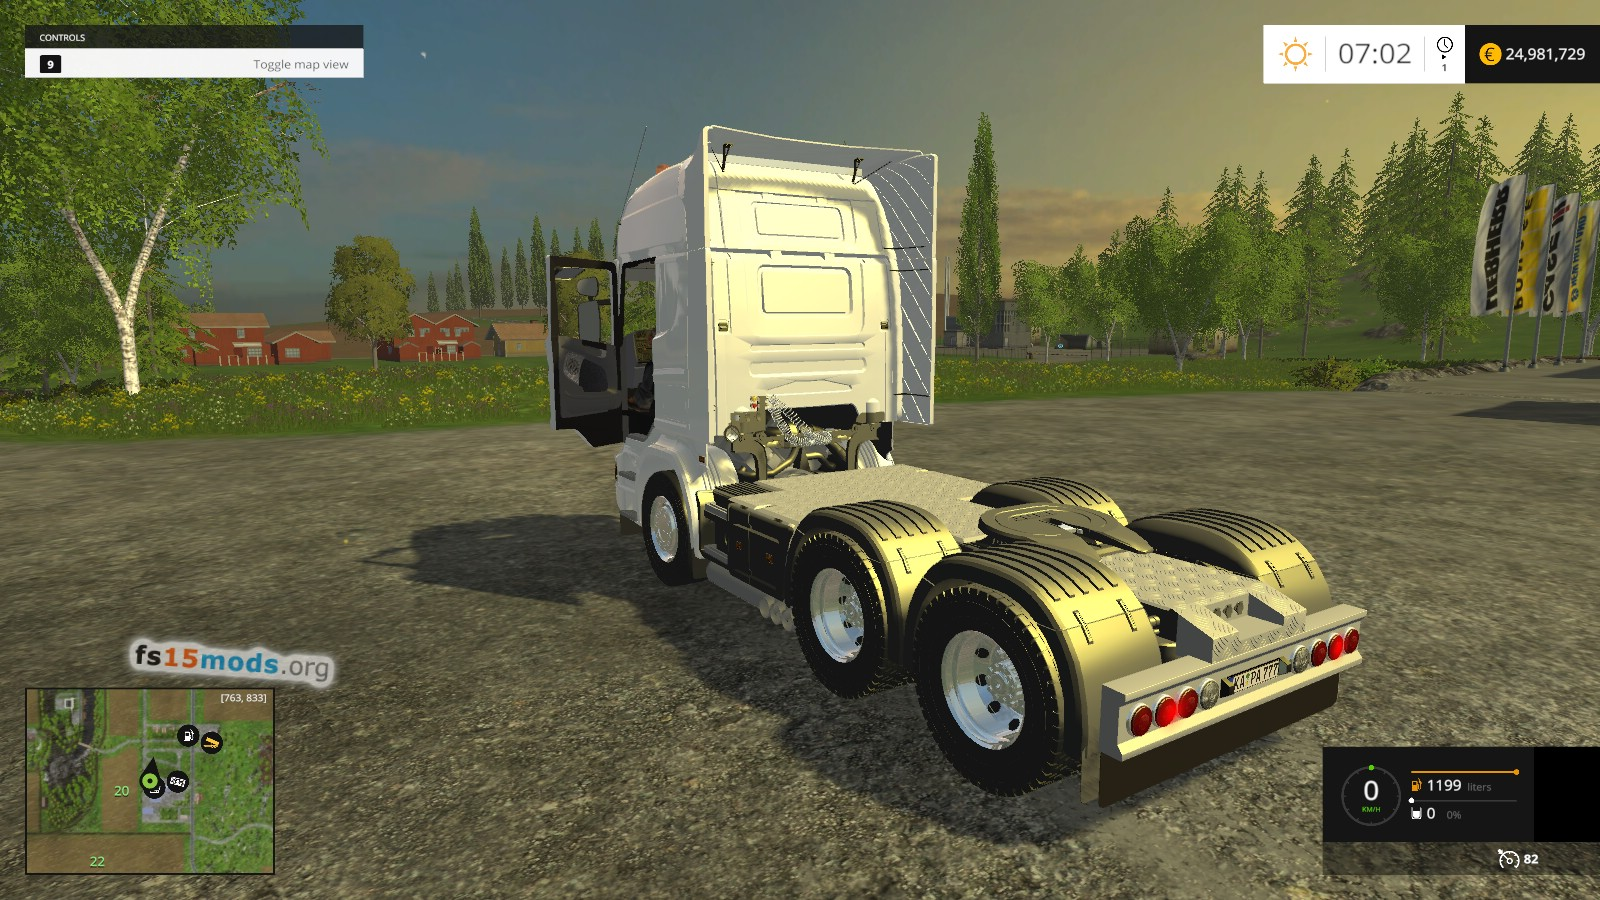 Scania R620 Fs15 Mods